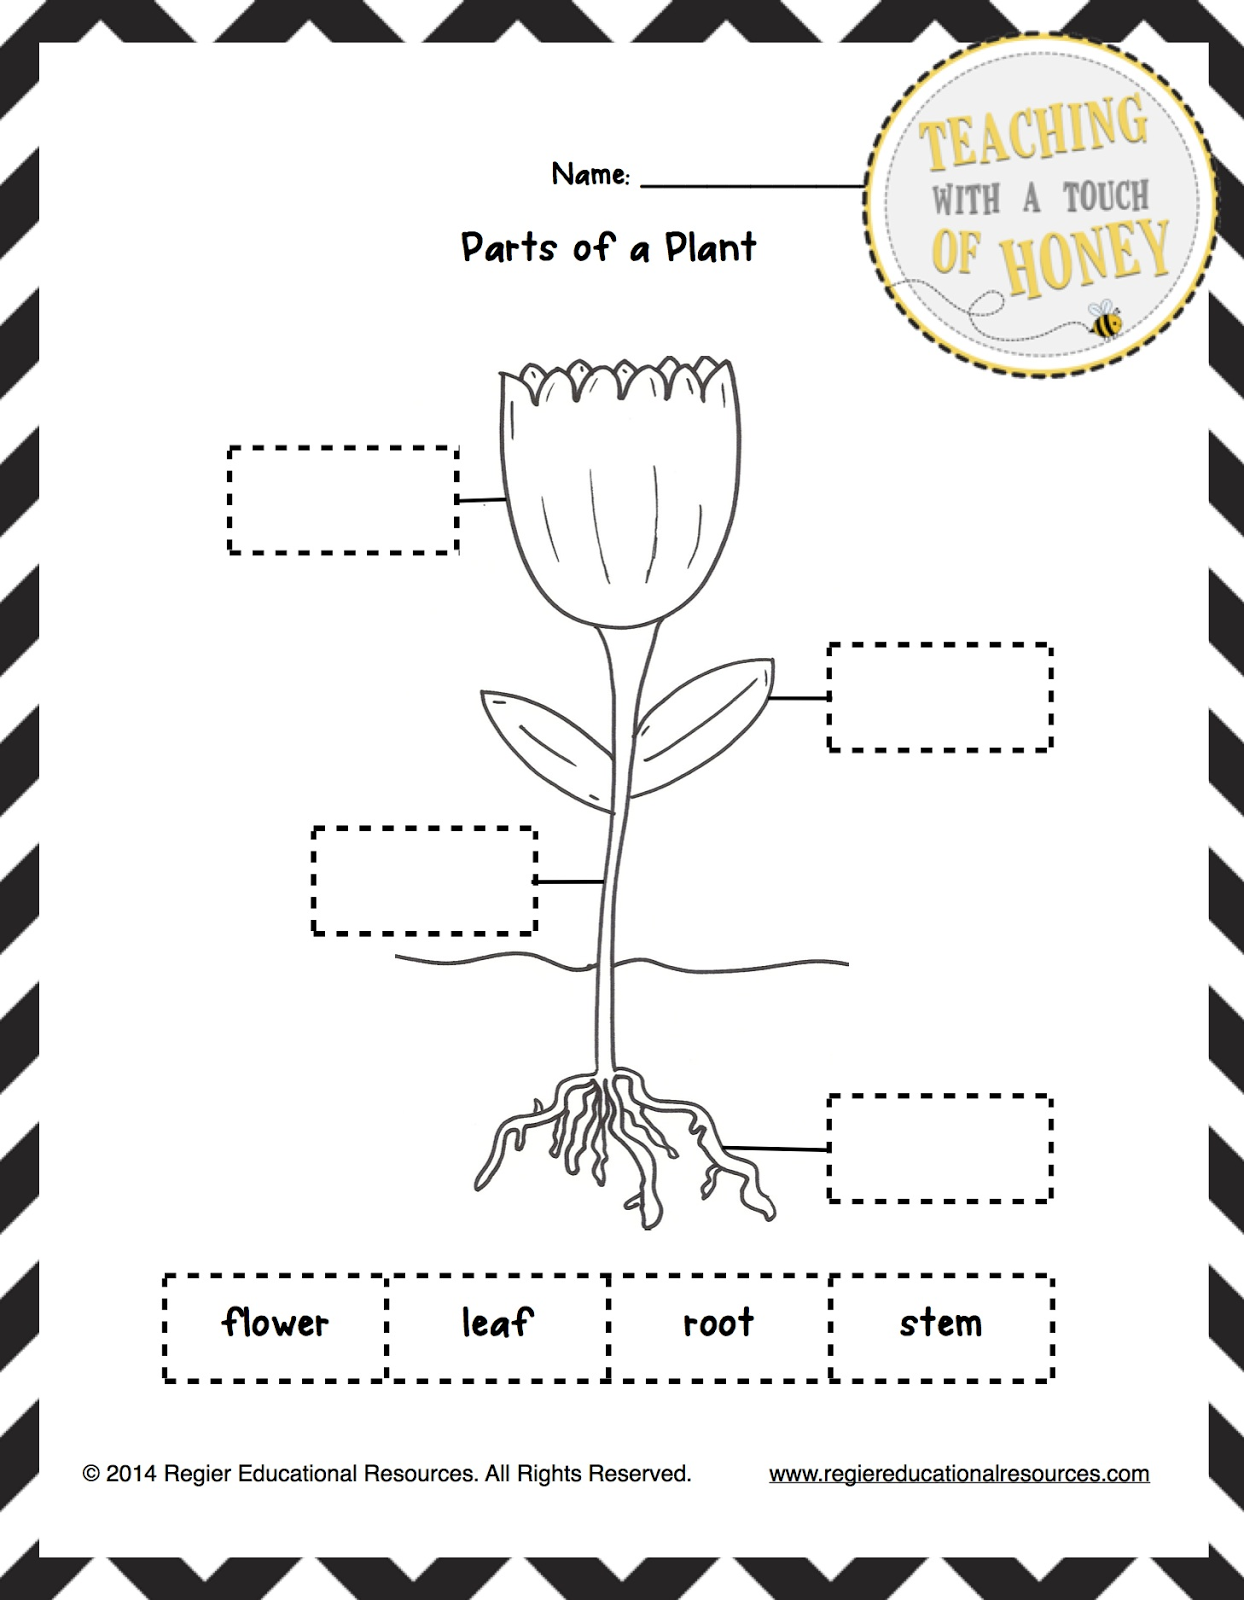 Free Worksheet Cut And Paste Worksheets For 2nd Grade cut and paste worksheets for first grade worksheet workbook site grade